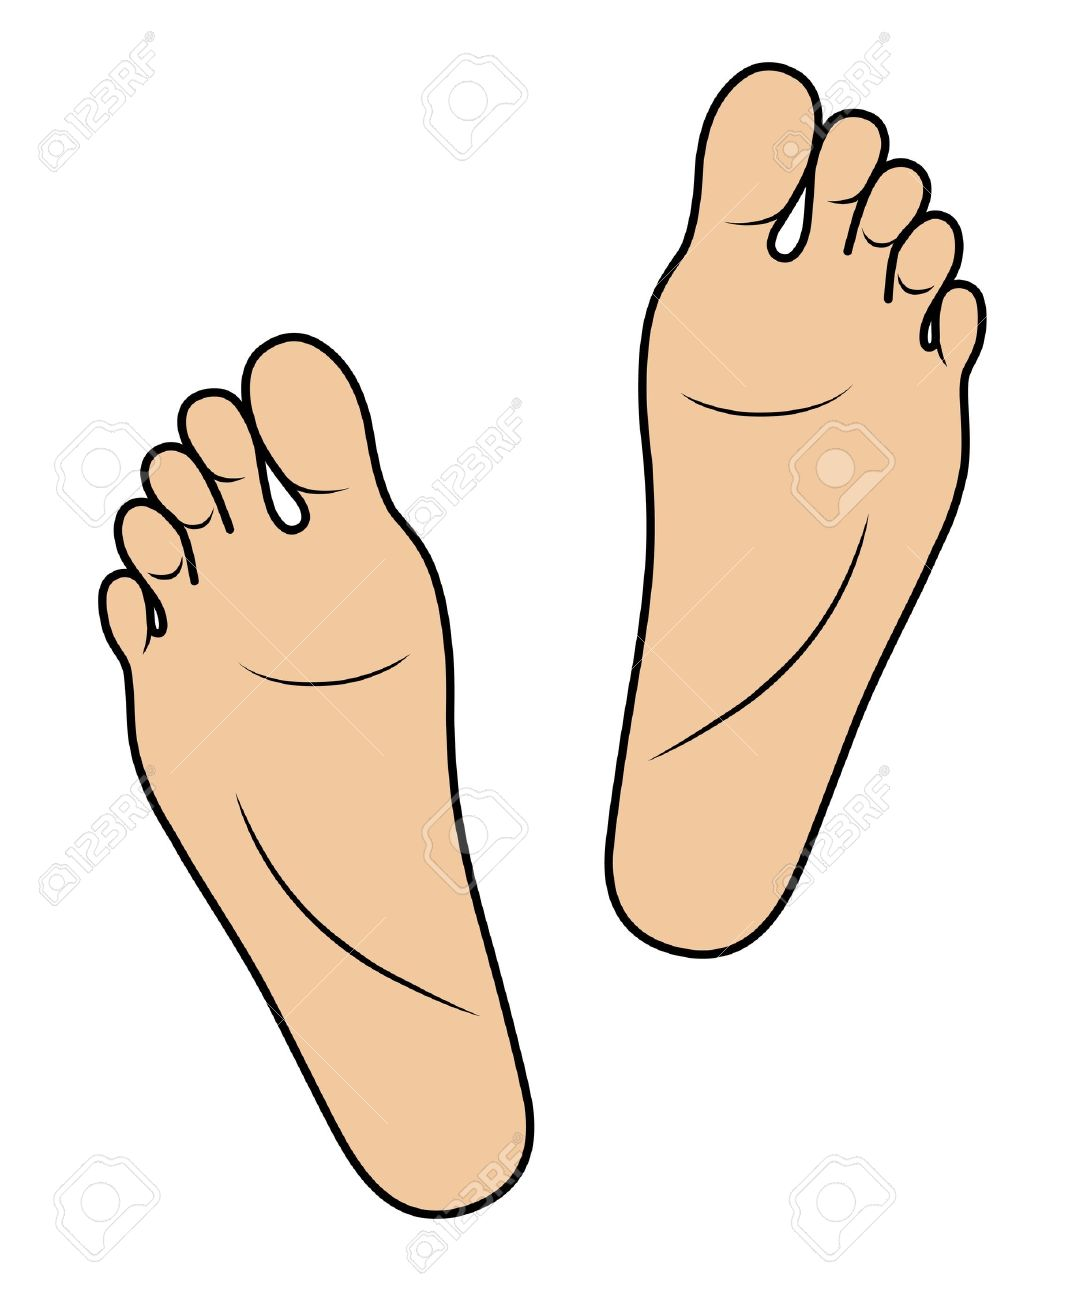 1074x1300 Clipart Of Feet